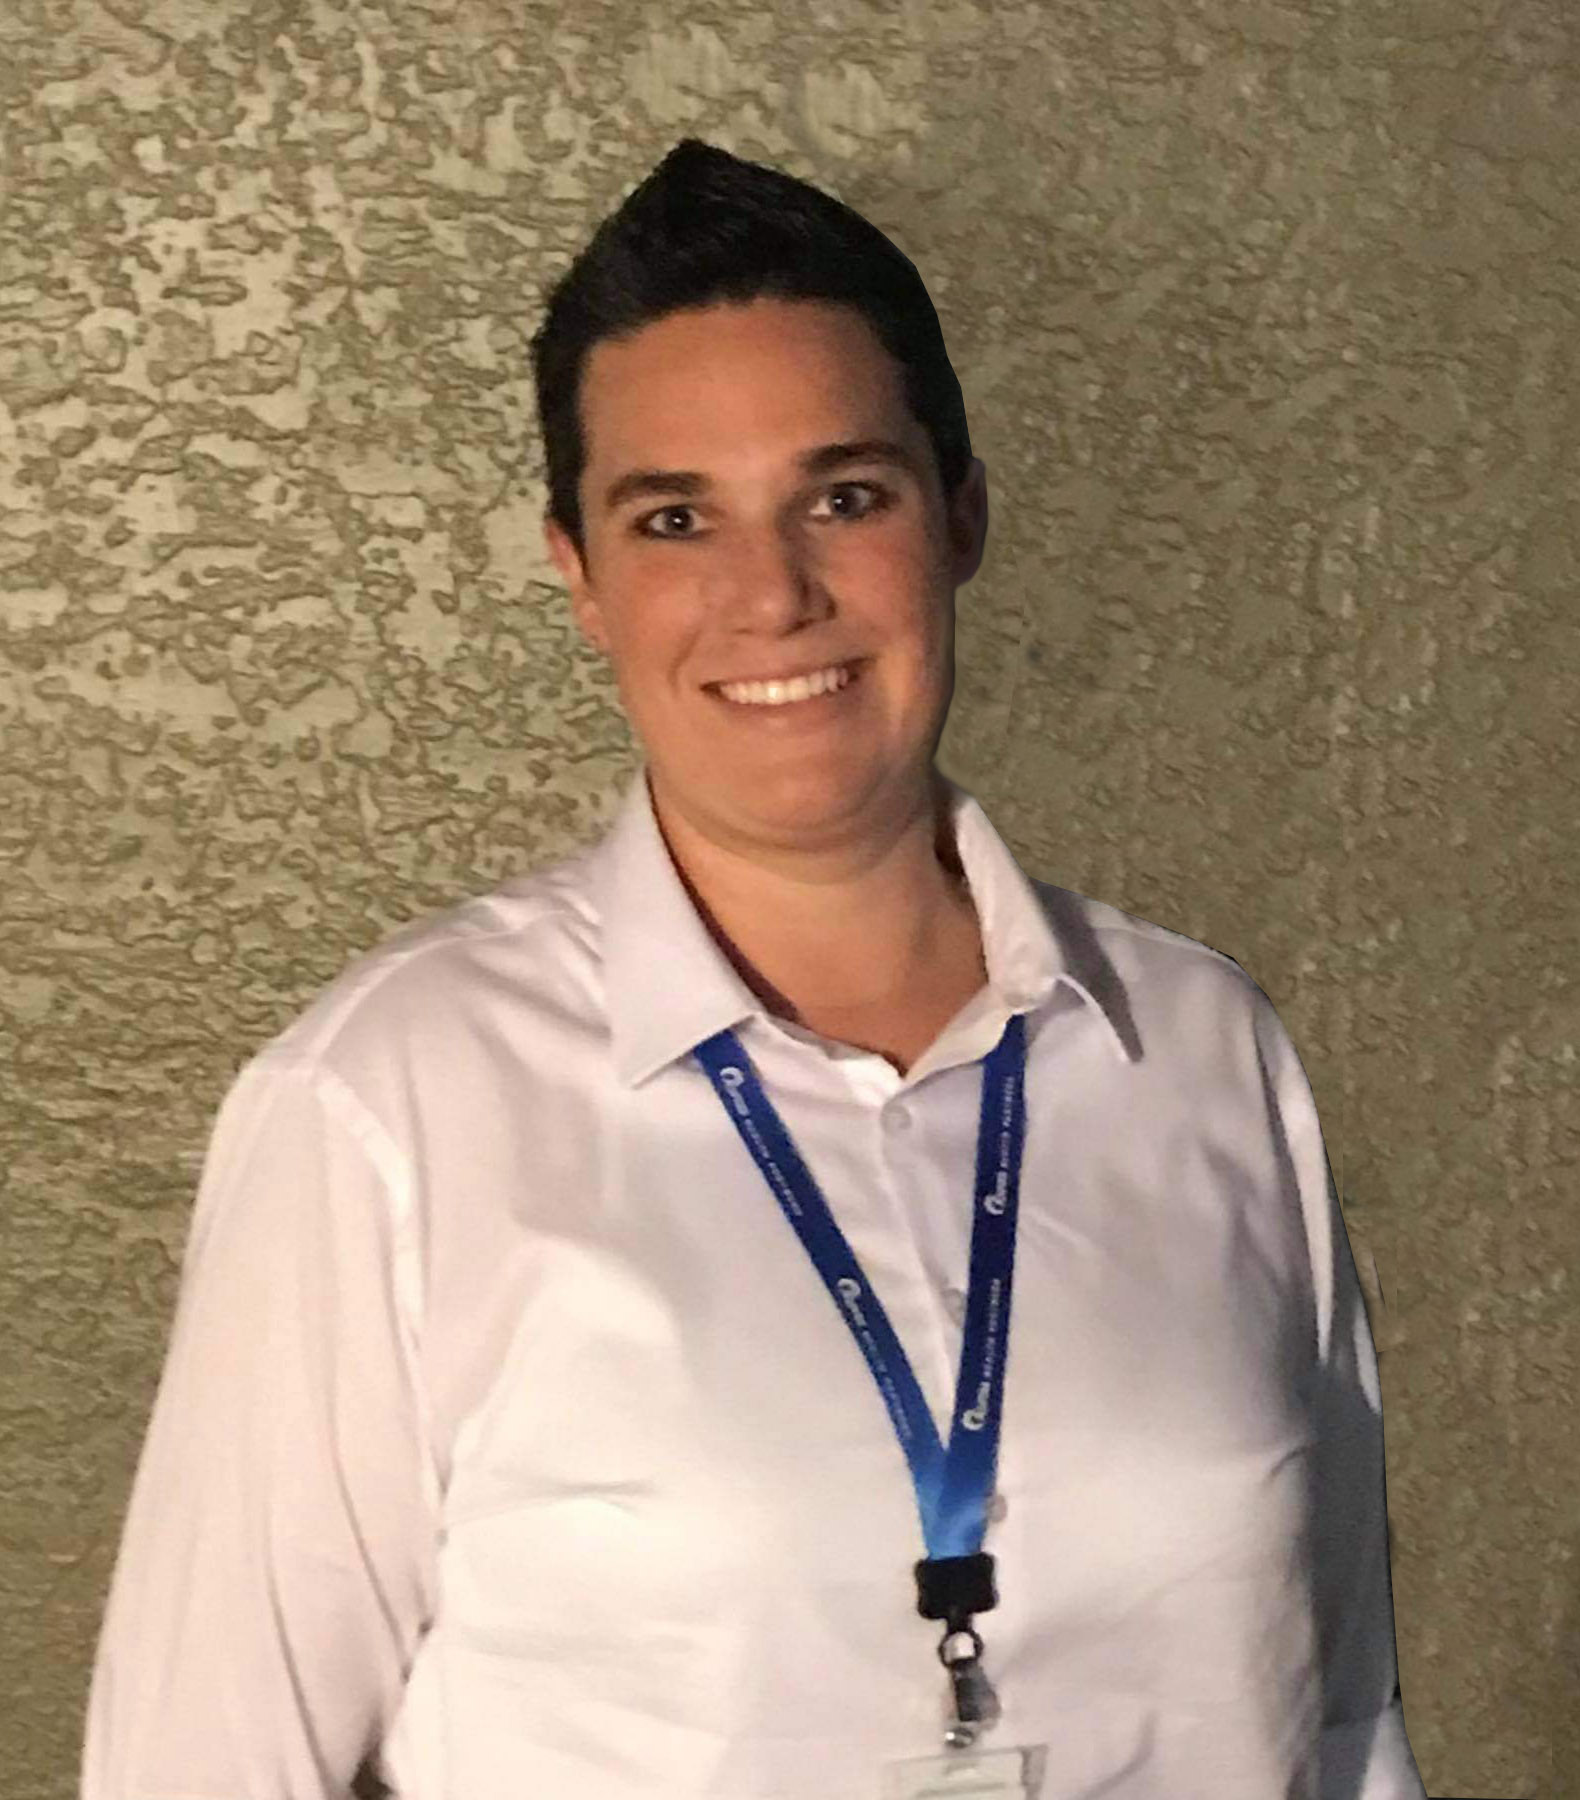 Keiser University Psychology Student Launches Career in Mental Health